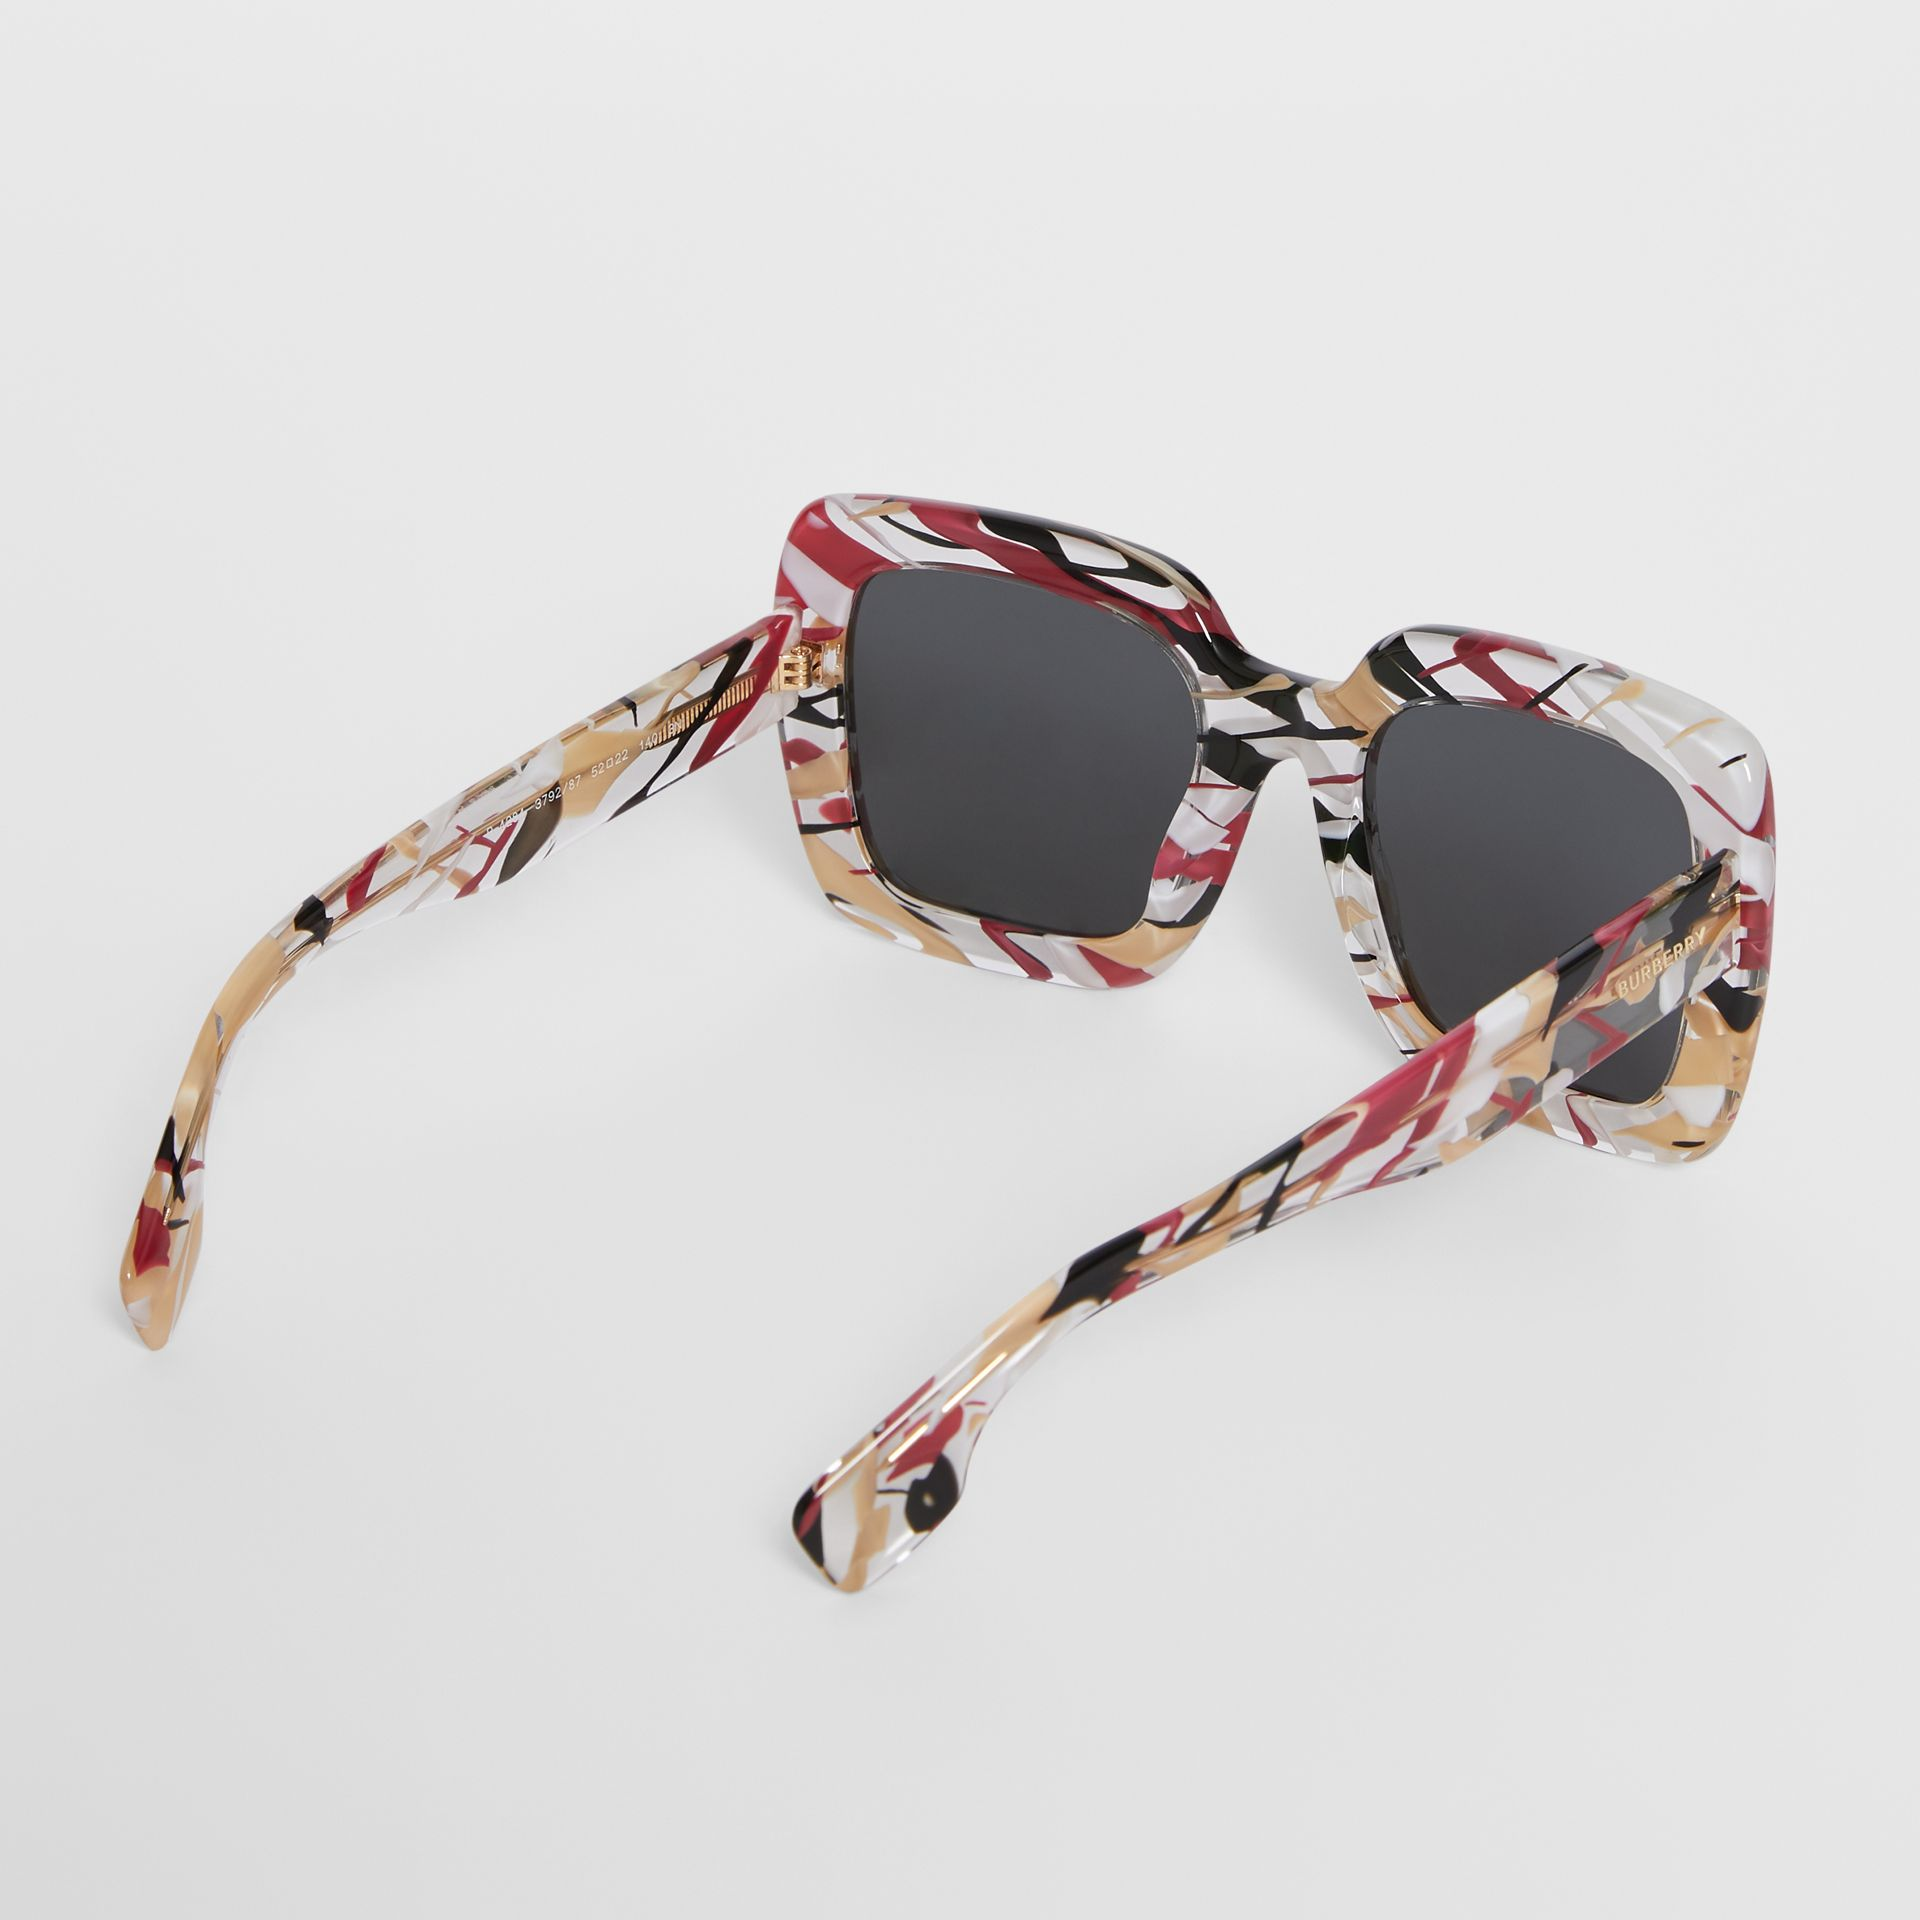 Marbled Check Oversized Square Frame Sunglasses in Lacquer Red - Women | Burberry Canada - gallery image 4